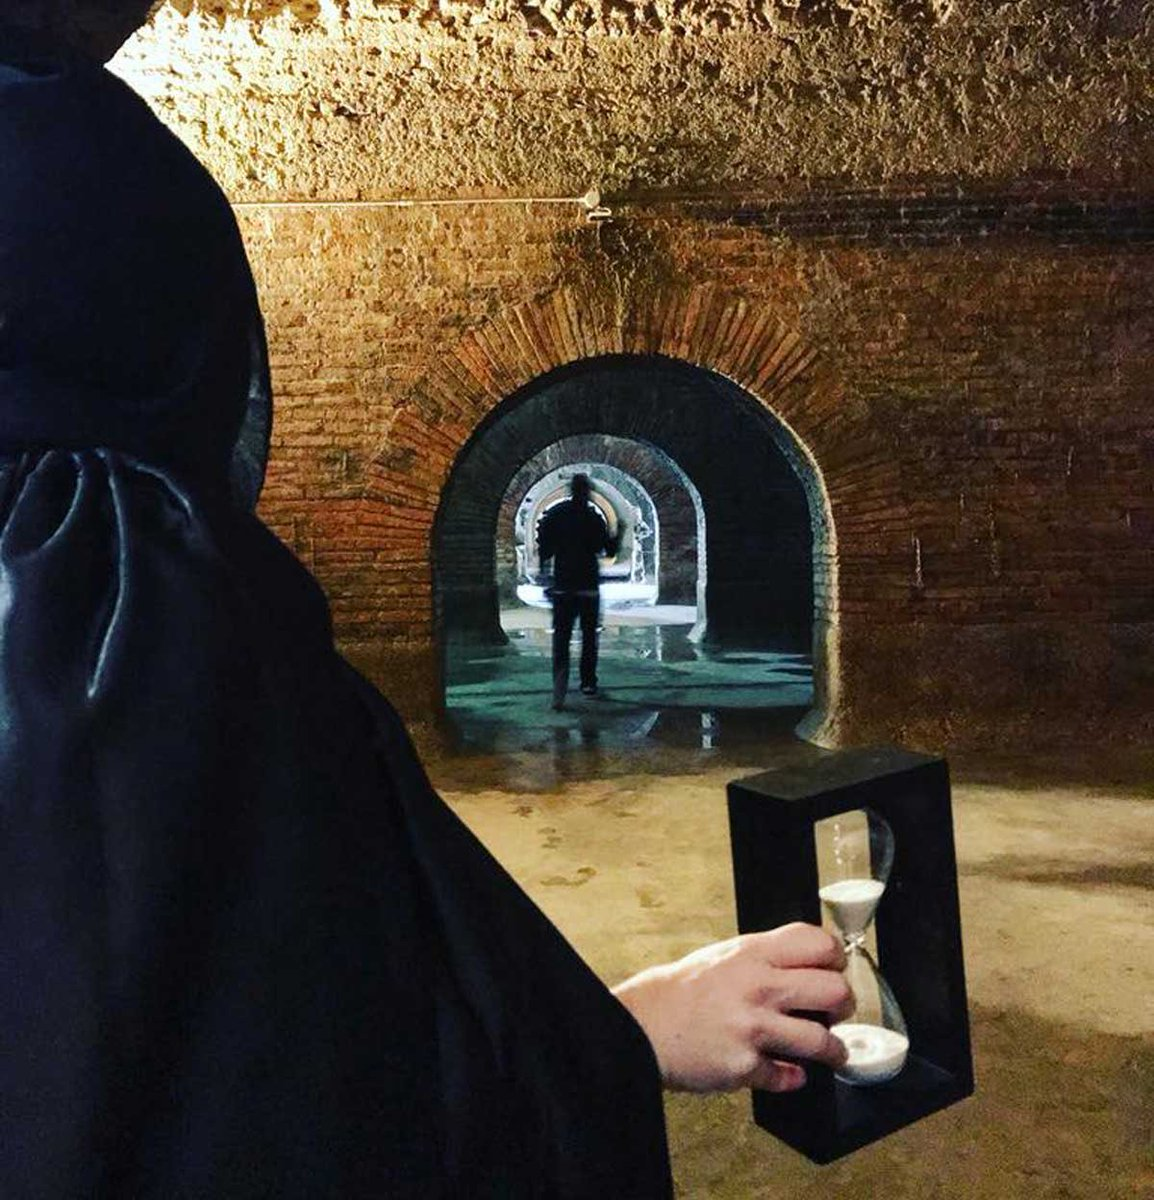 test Twitter Media - #EscapeRoom un grande successo a #Fermo >> la prima in un sito archeologico sotterraneo, pronti per la sfida? https://t.co/D5u5Prtb7g https://t.co/nNt7QlykMN